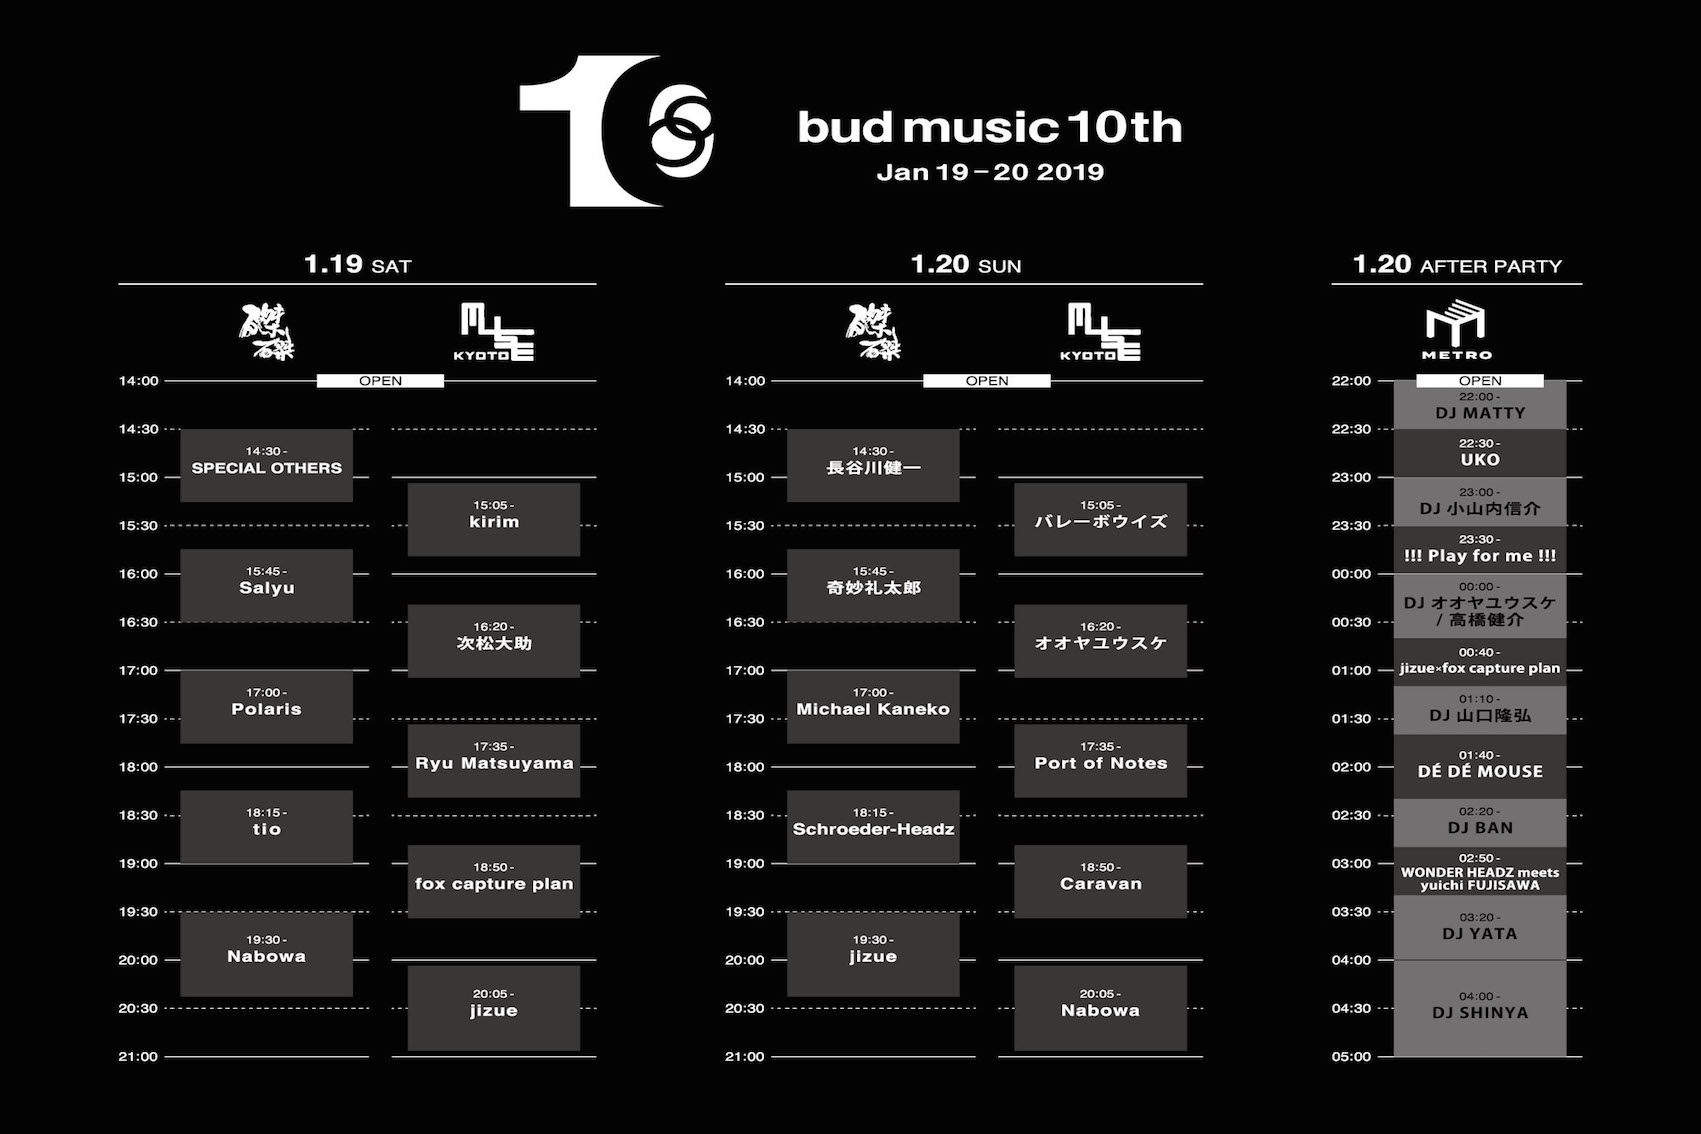 bud10th-timetable (5)